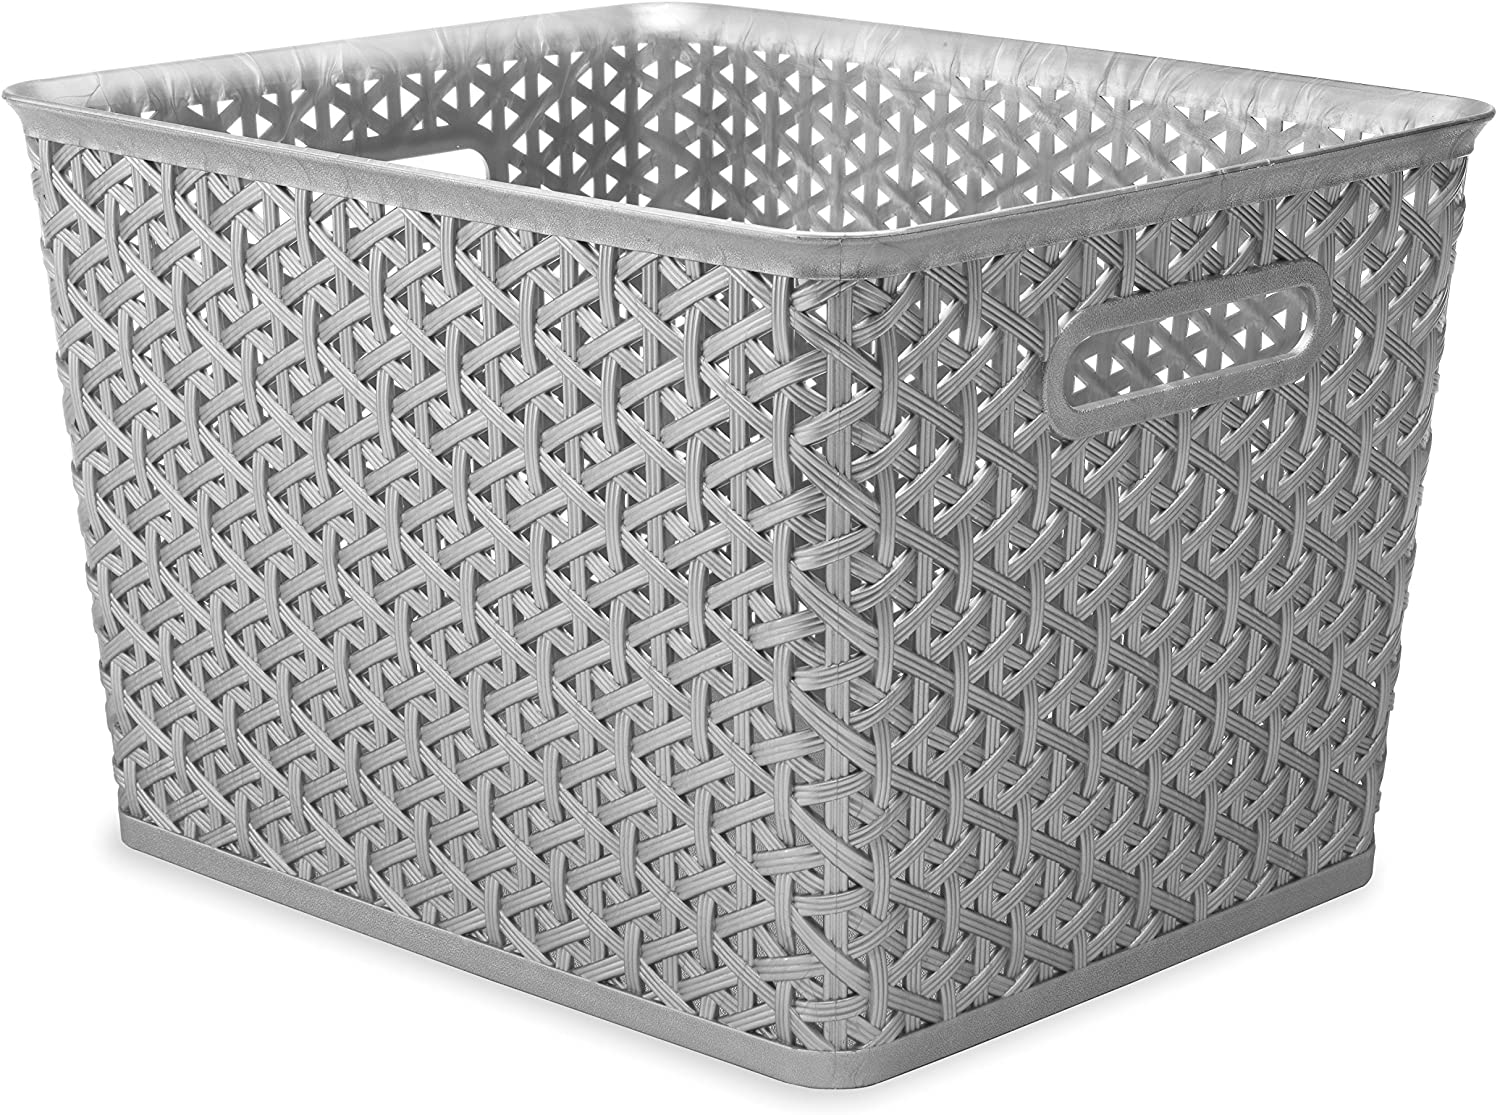 Whitmor Resin Form Tote, Large, Silver